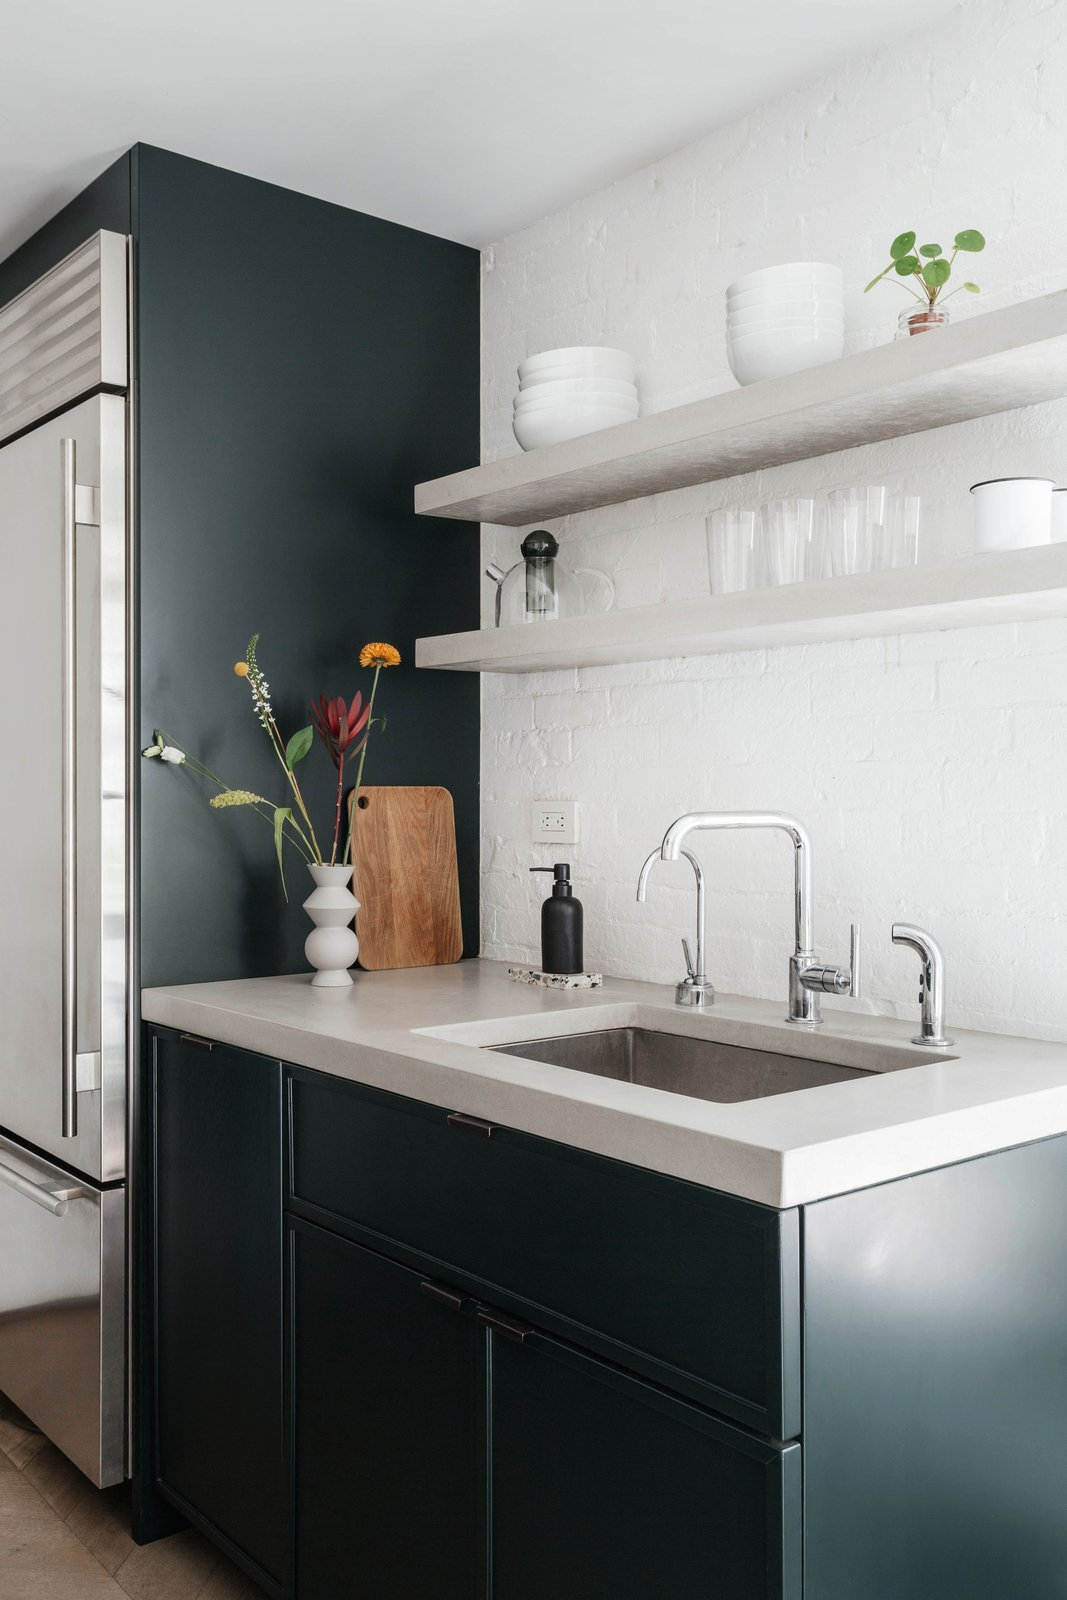 Kitchen, Refrigerator, Undermount Sink, Brick Backsplashe, and Colorful Cabinet A peek at the dark green, fuss-free kitchen.  Photo 9 of 14 in A Small Manhattan Home Gains  Space With Two Cozy Lofts